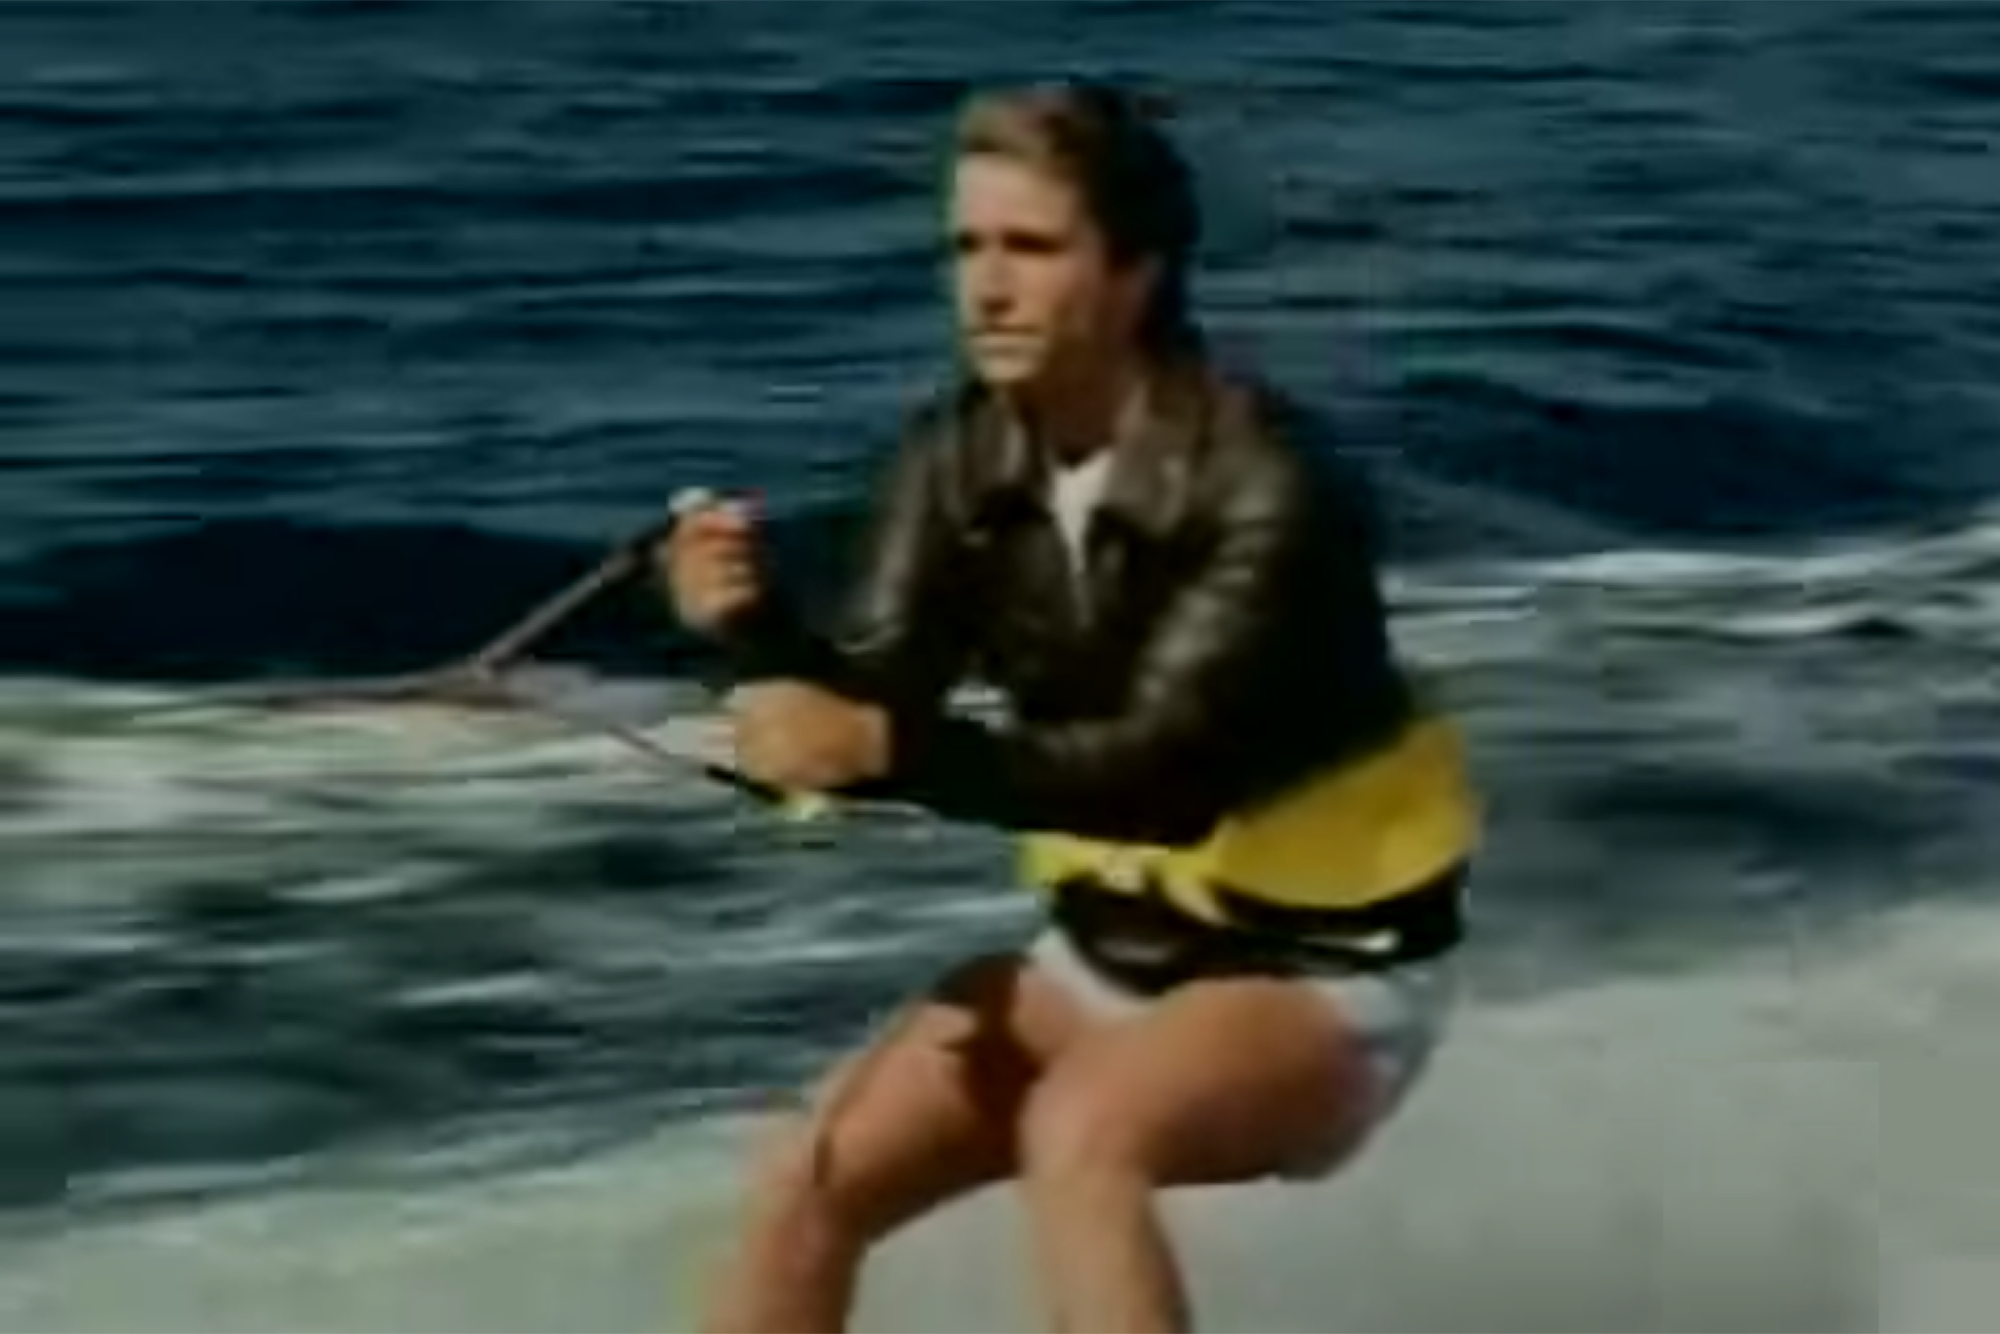 Let\u0027s Watch Fonzie Jump the Shark One More Time for Garry Marshall